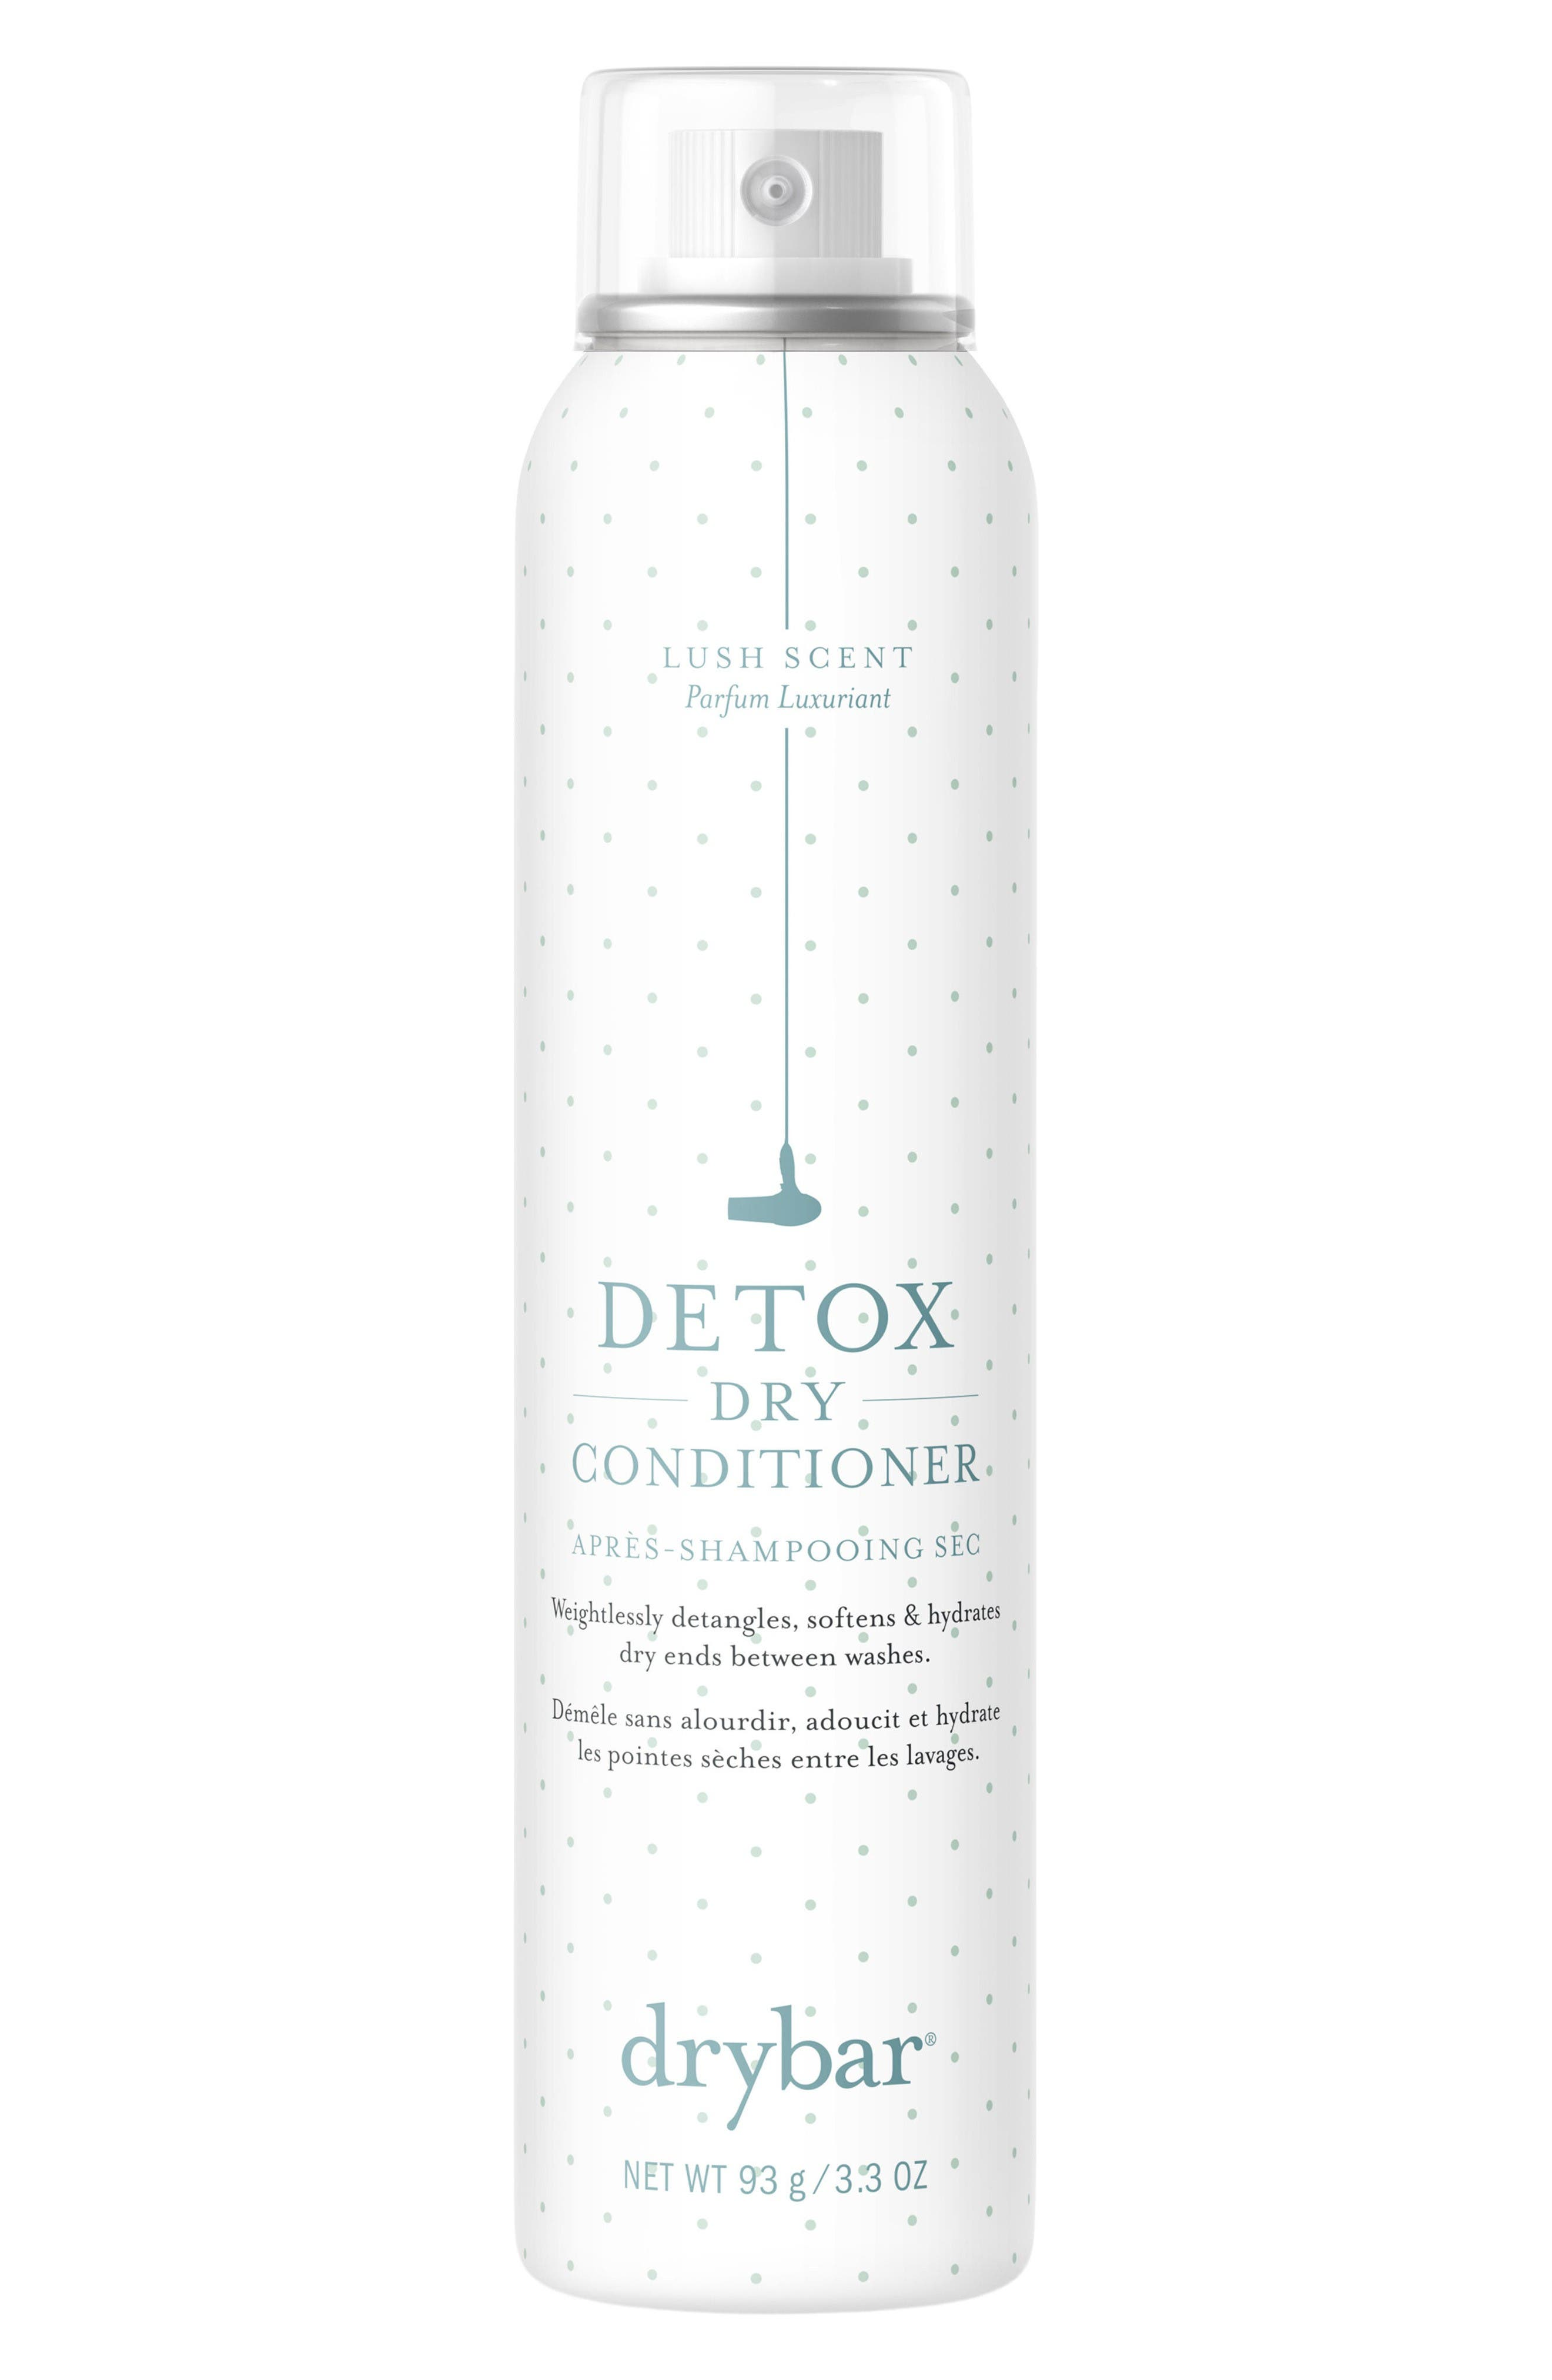 Alternate Image 1 Selected - Drybar Lush Scent Detox Dry Conditioner